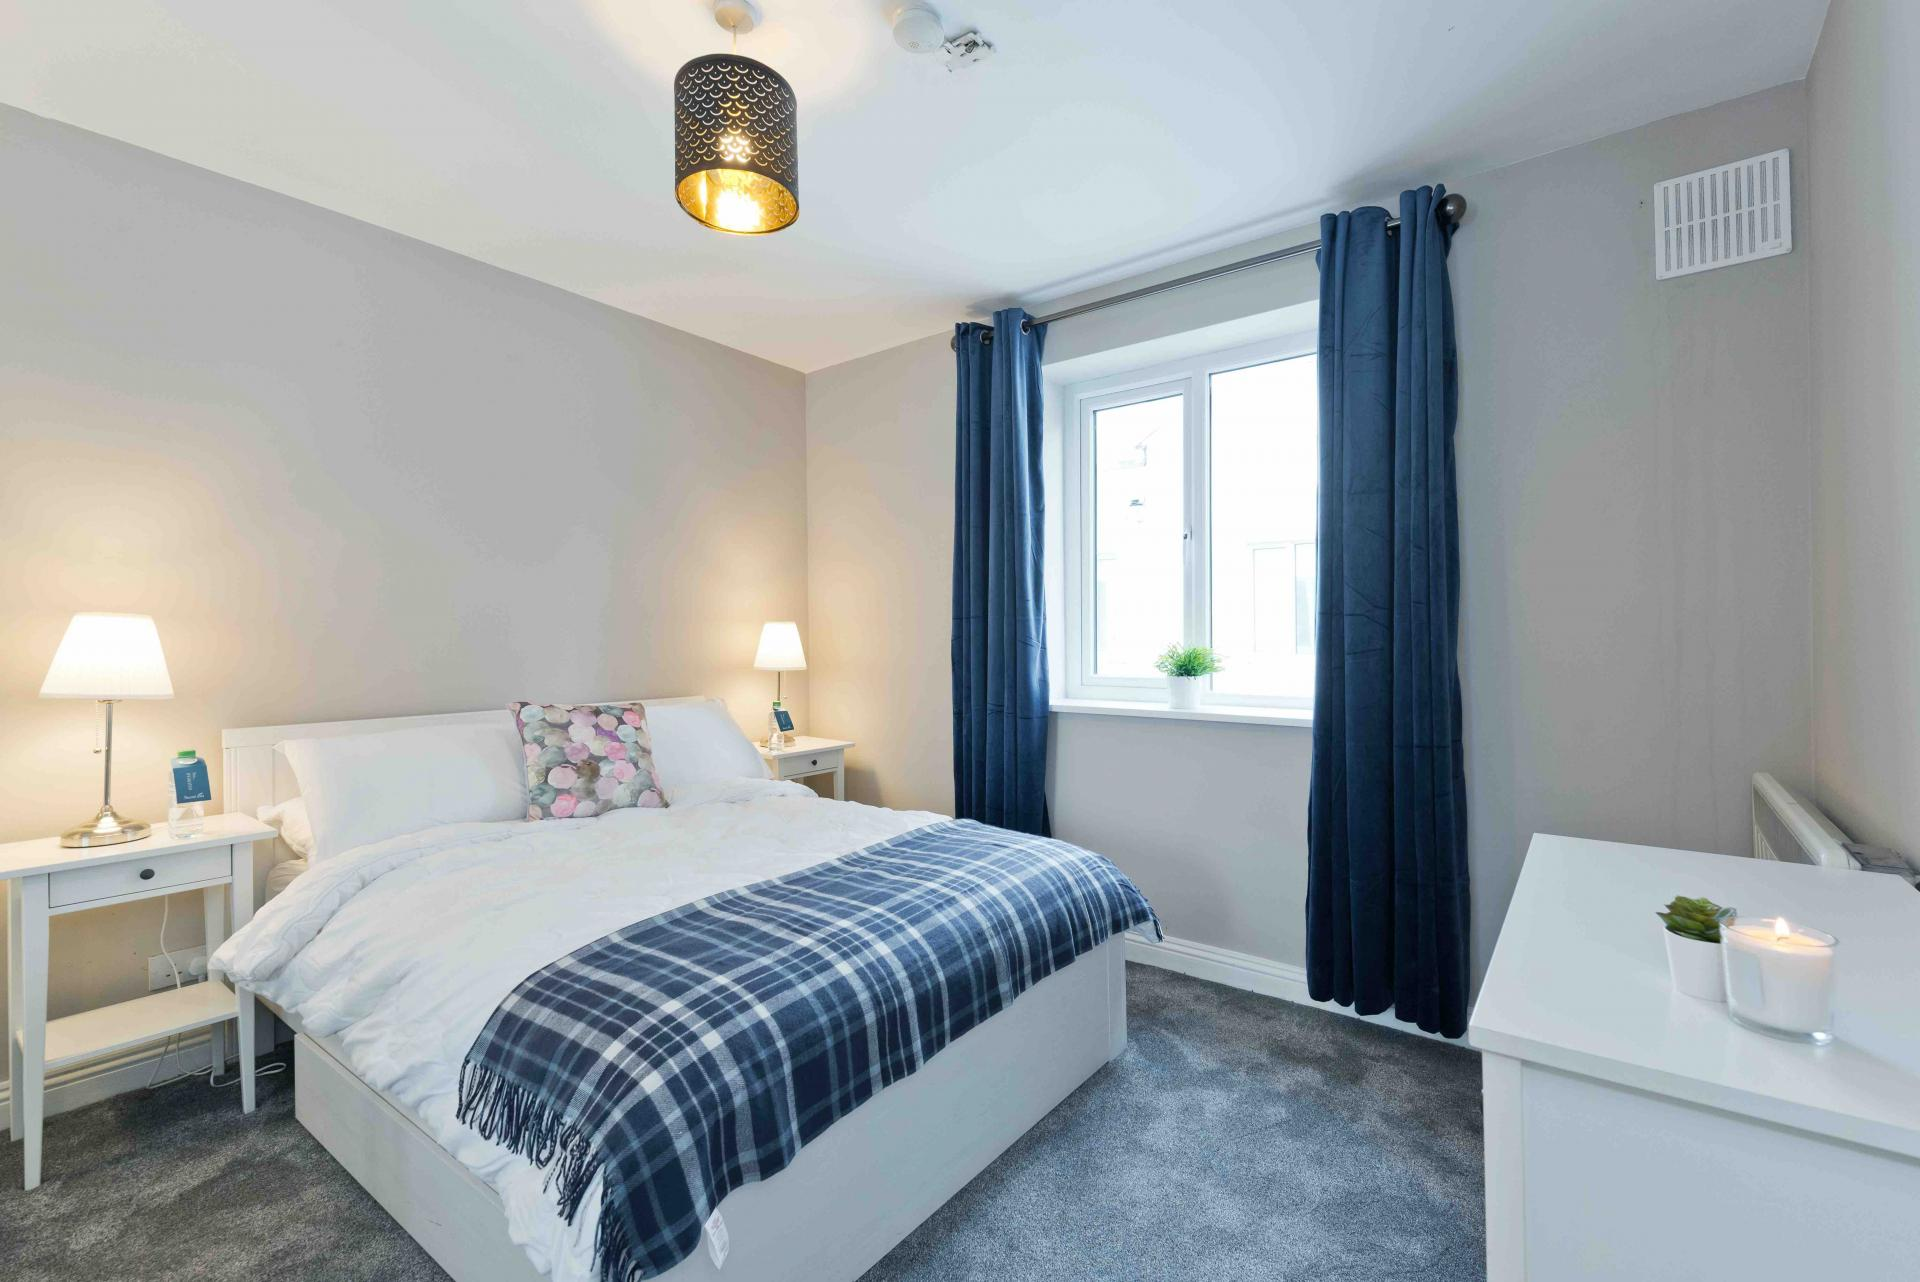 Bedroom at Crow Street Apartment, Temple Bar, Dublin - Citybase Apartments